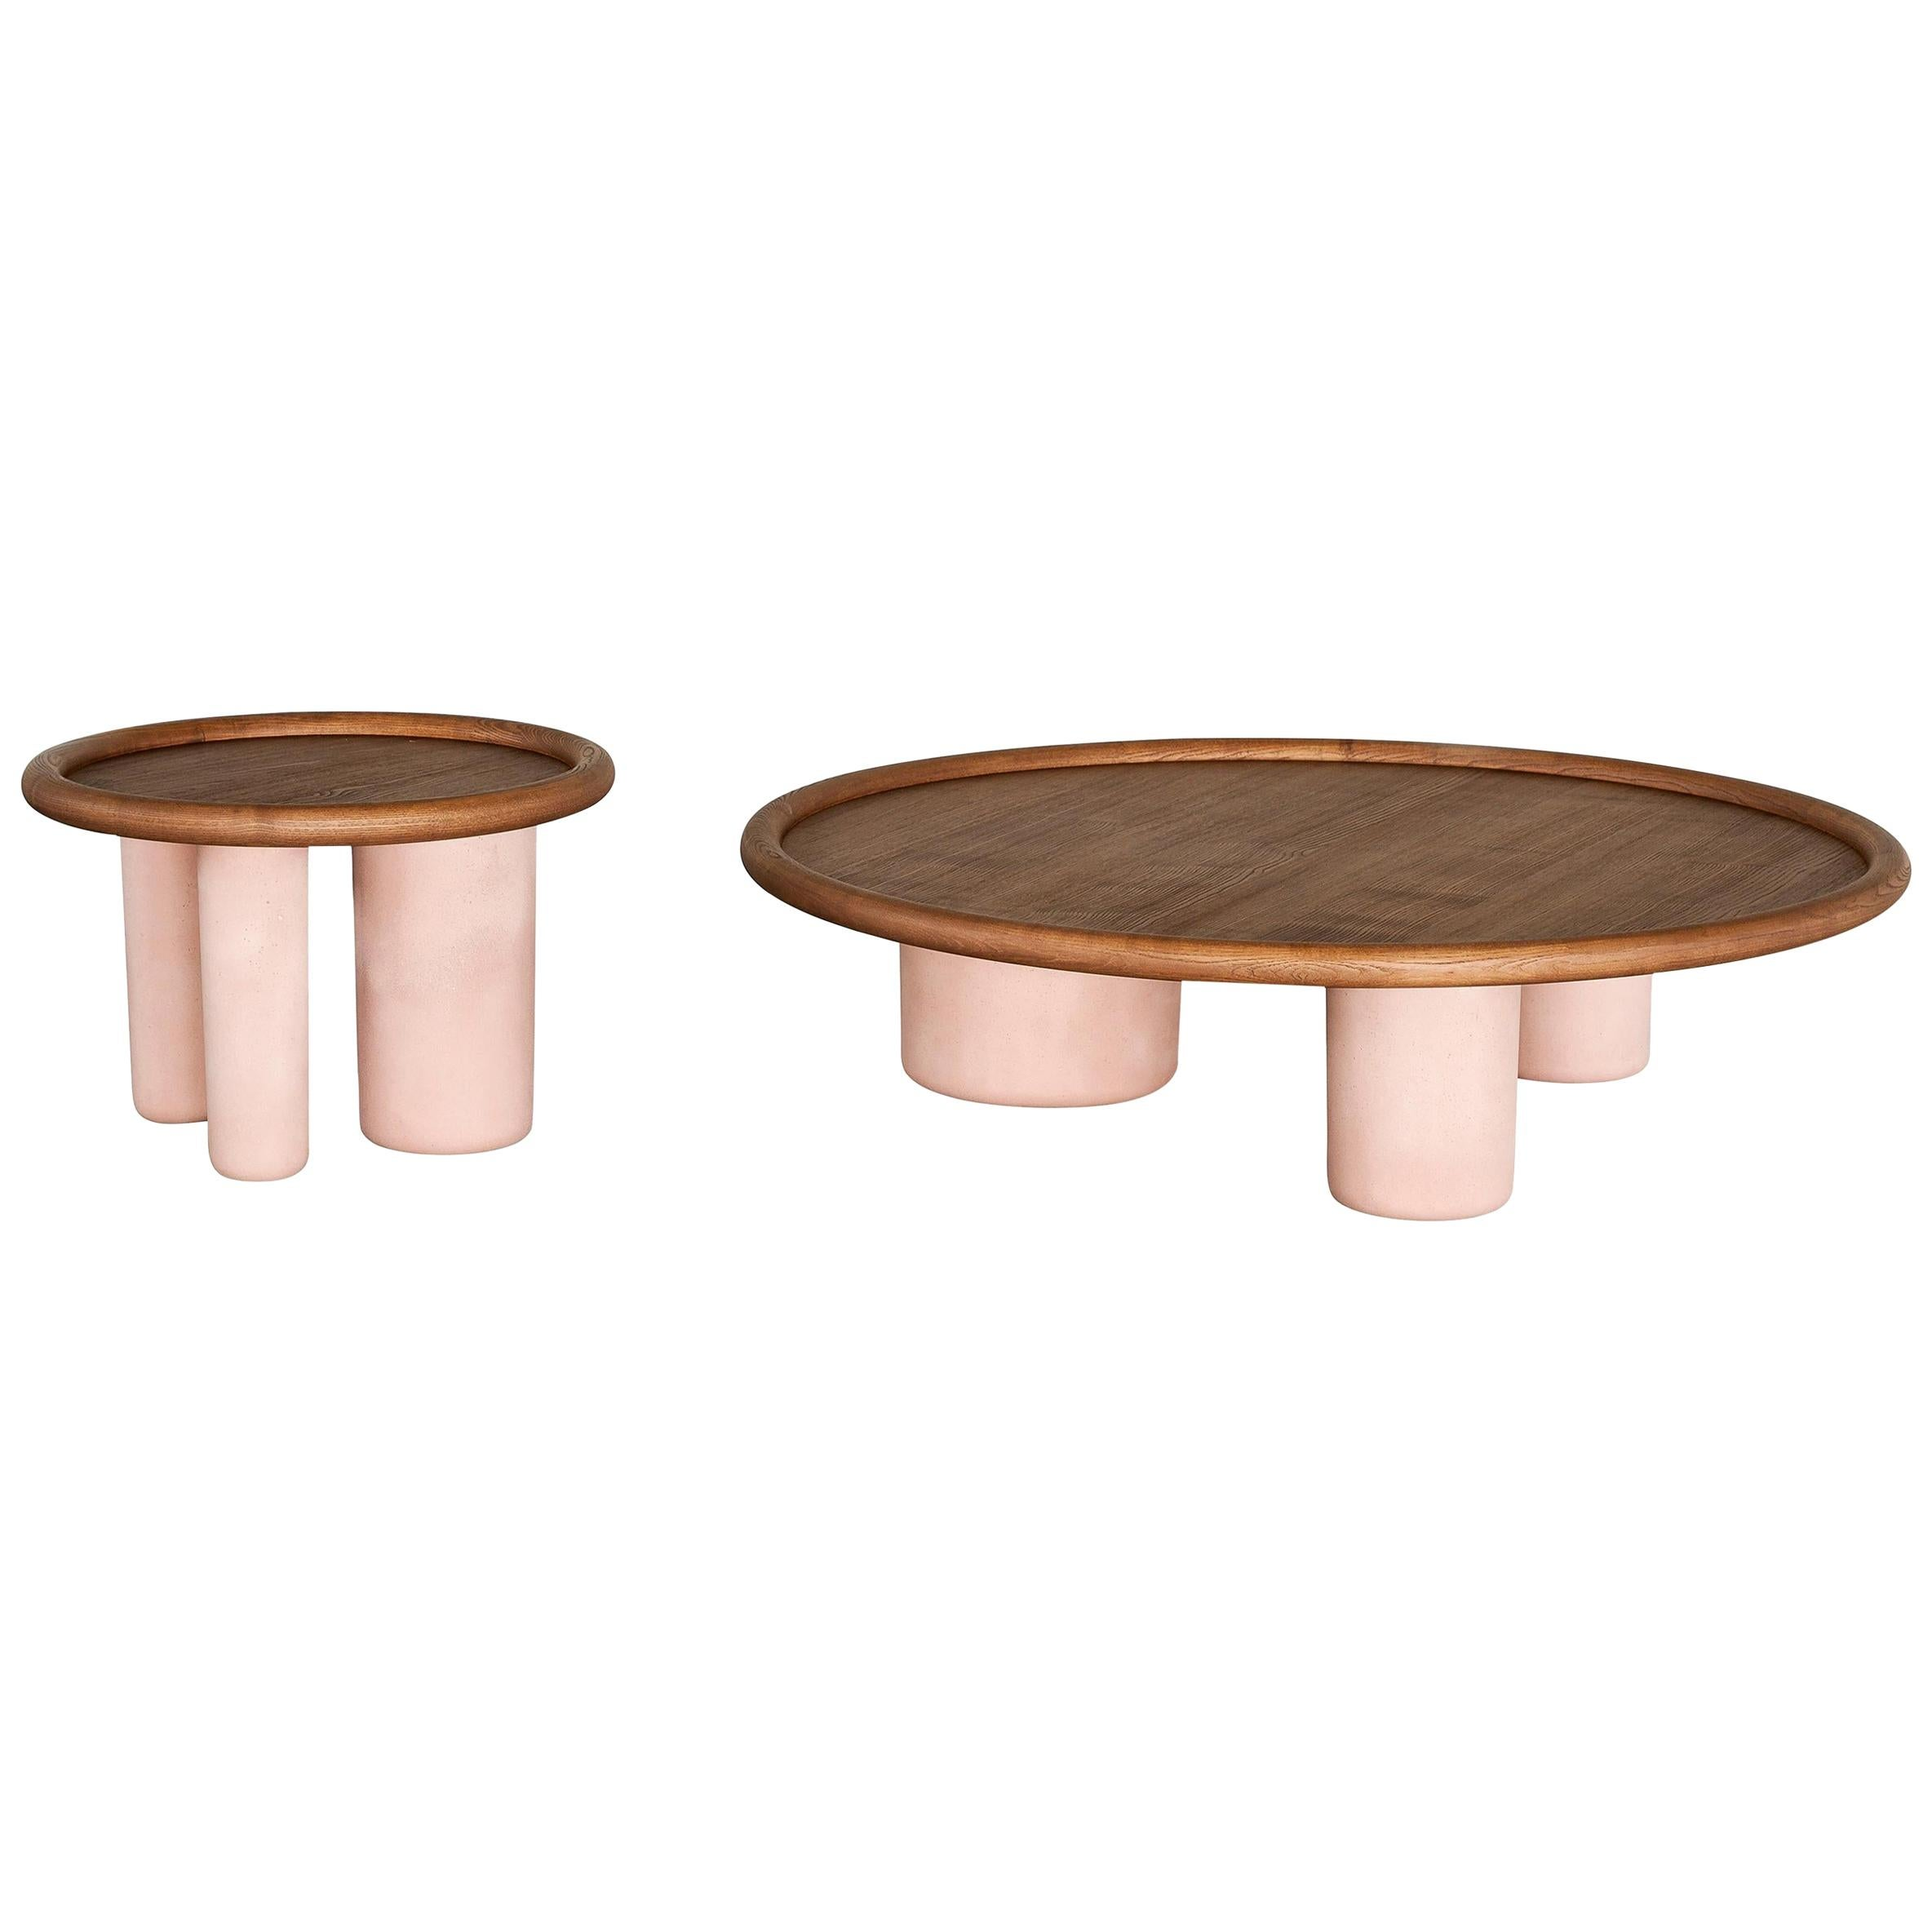 Tacchini Set of Two Pluto Tables Designed by Studiopepe